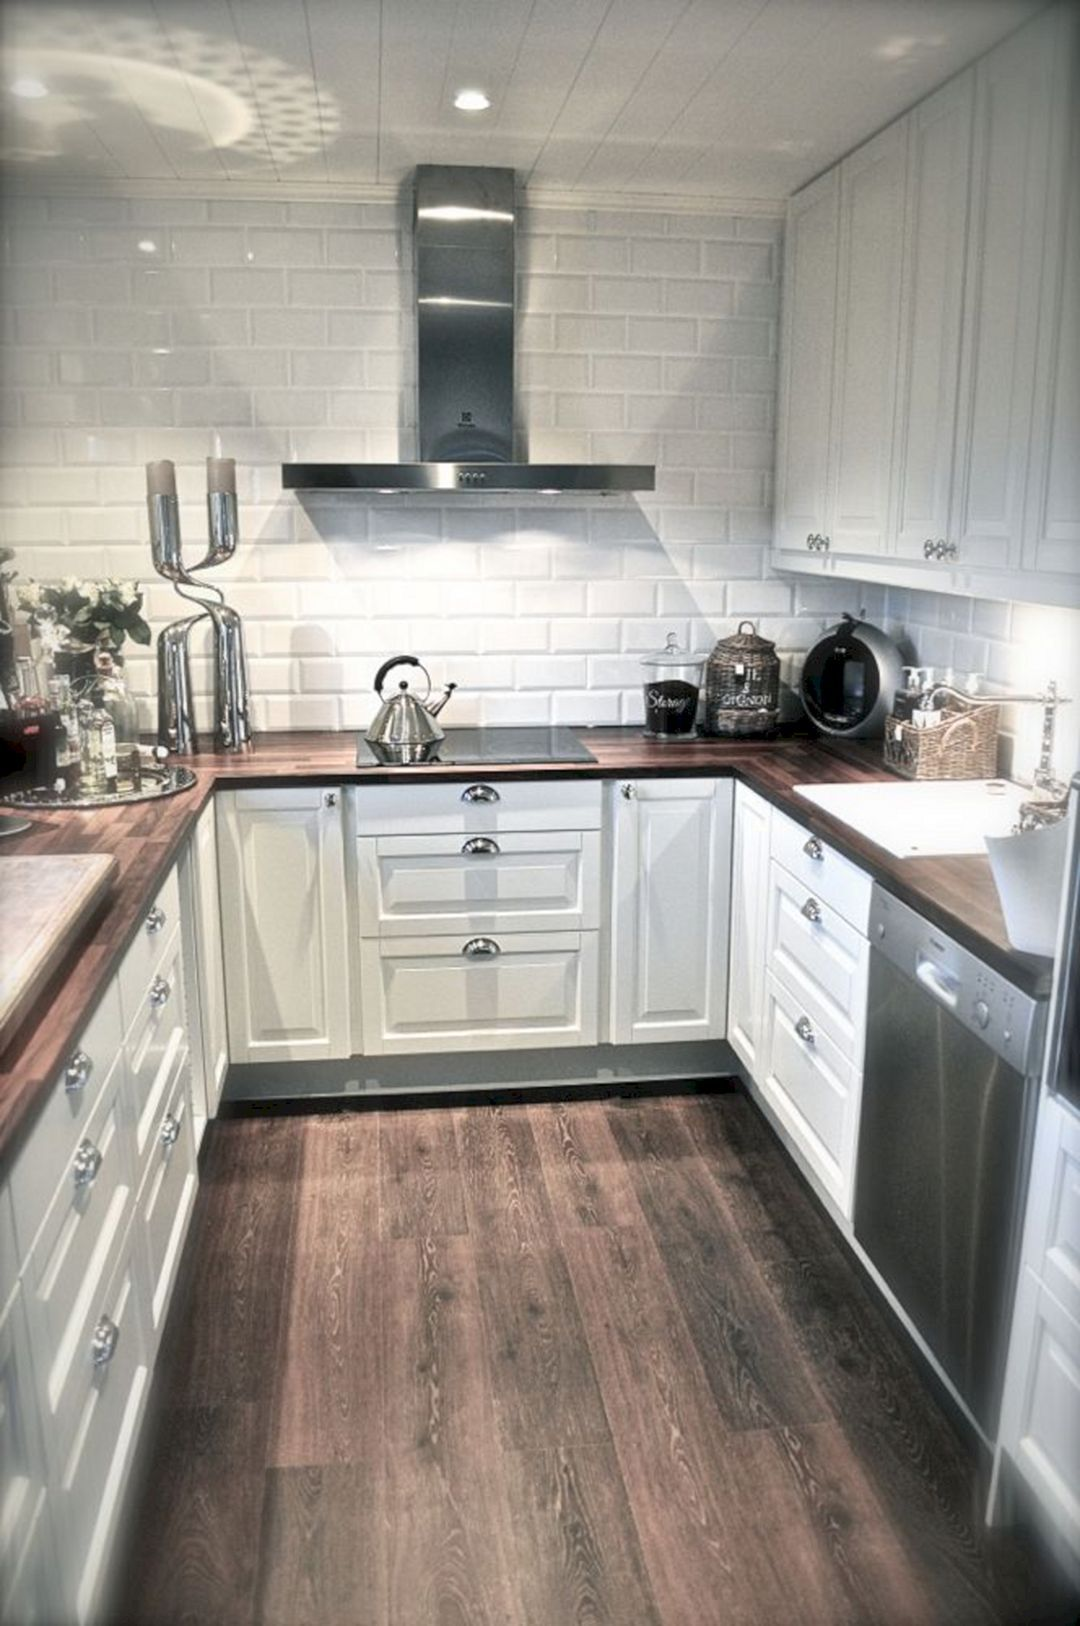 Awesome Tiny Kitchen Design For Your Beautiful Tiny House: 65+ Best Design Ideas #kitchendesignideas